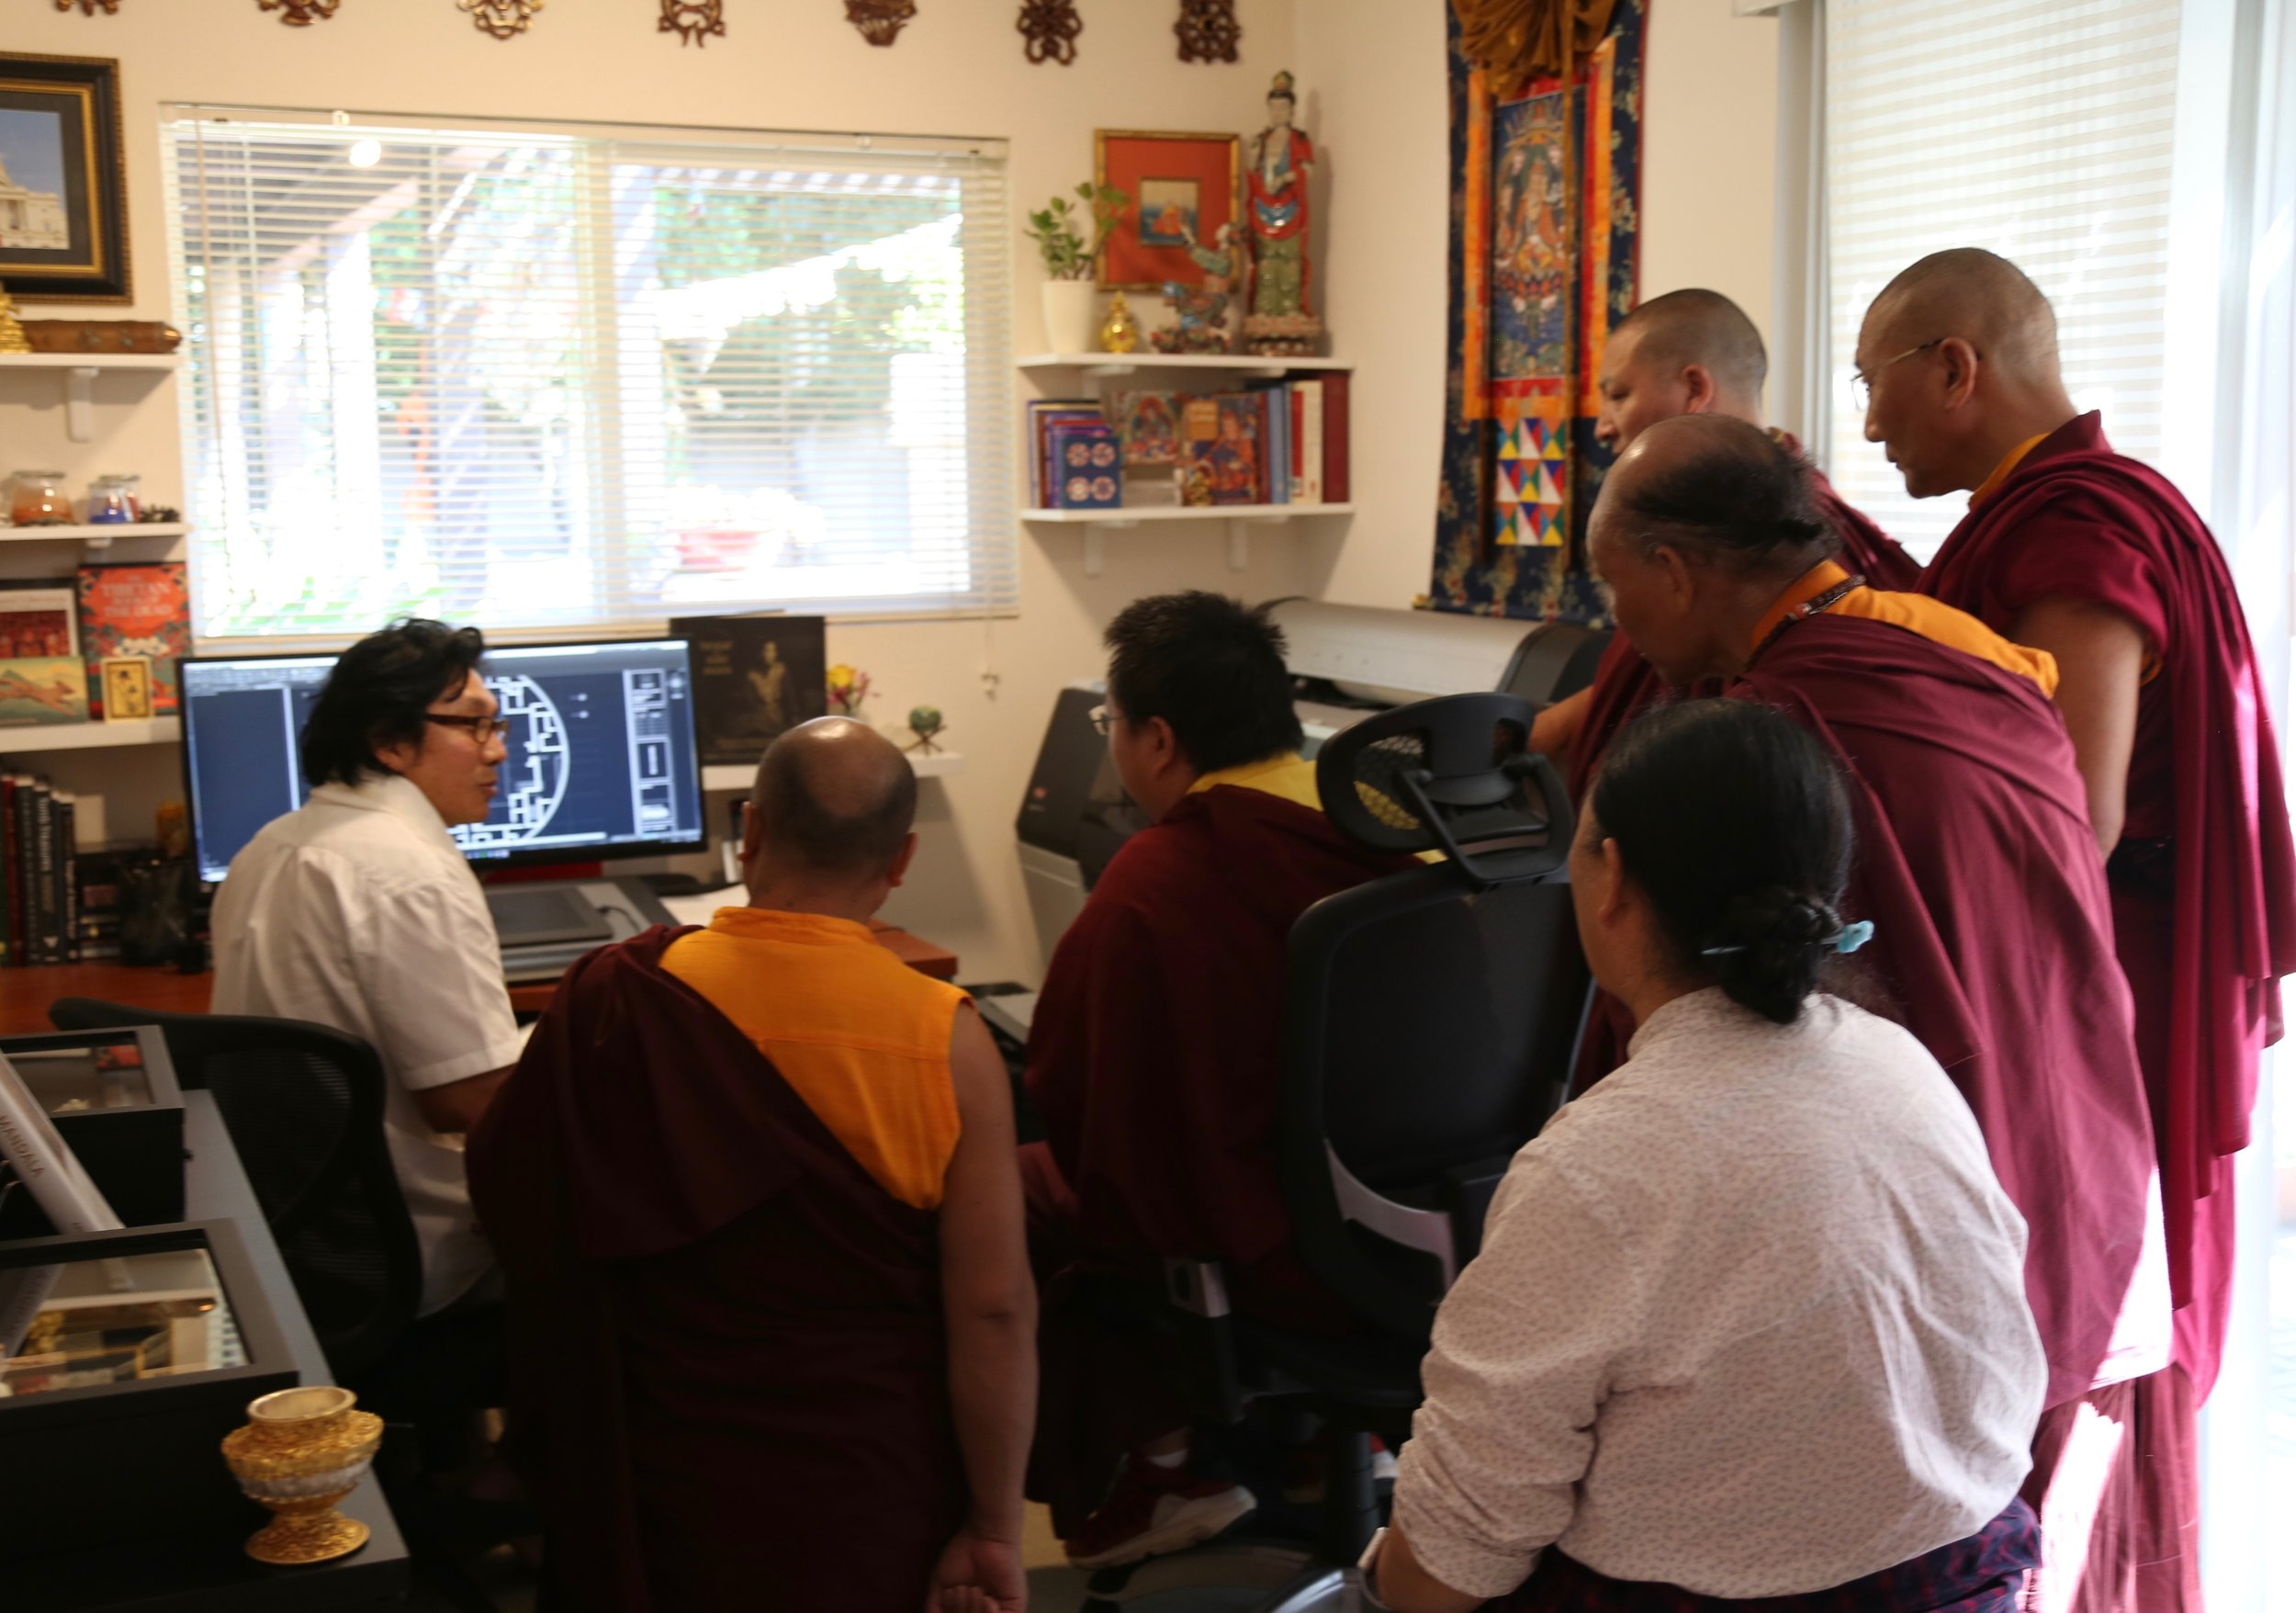 HH Dudjom Yangsi Rinpoche visiting Pema Namdol at Padma Studios®, with Mayamla, Venerable Khenpo's, and Lama Sonam Tsering